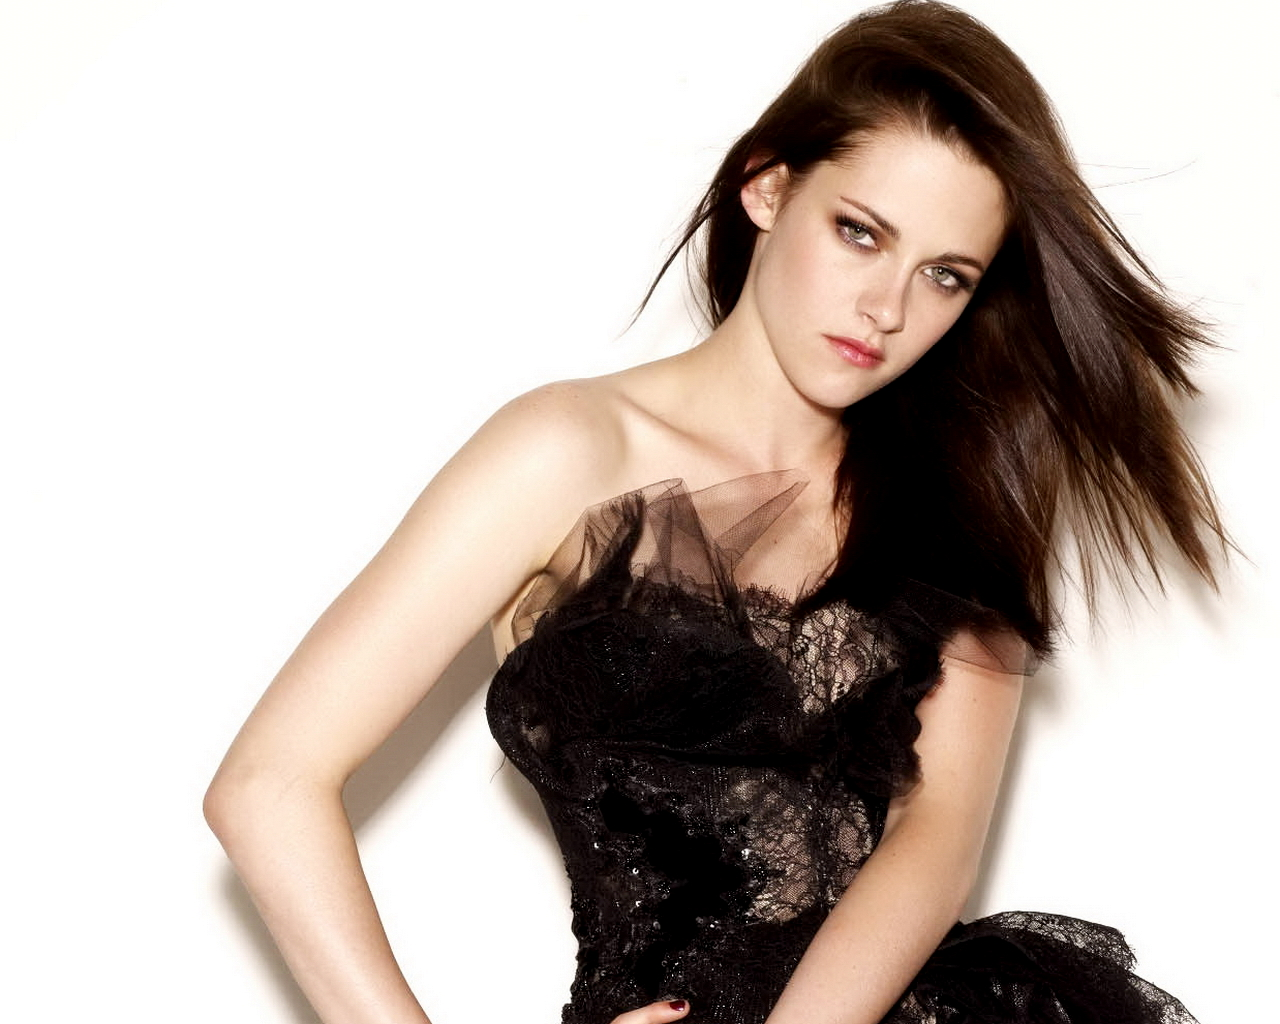 Kristen Stewart made a dramatic change to her hair for an upcoming film role. The Twilight star opted for tangerine locks and dark roots for her part in the ...